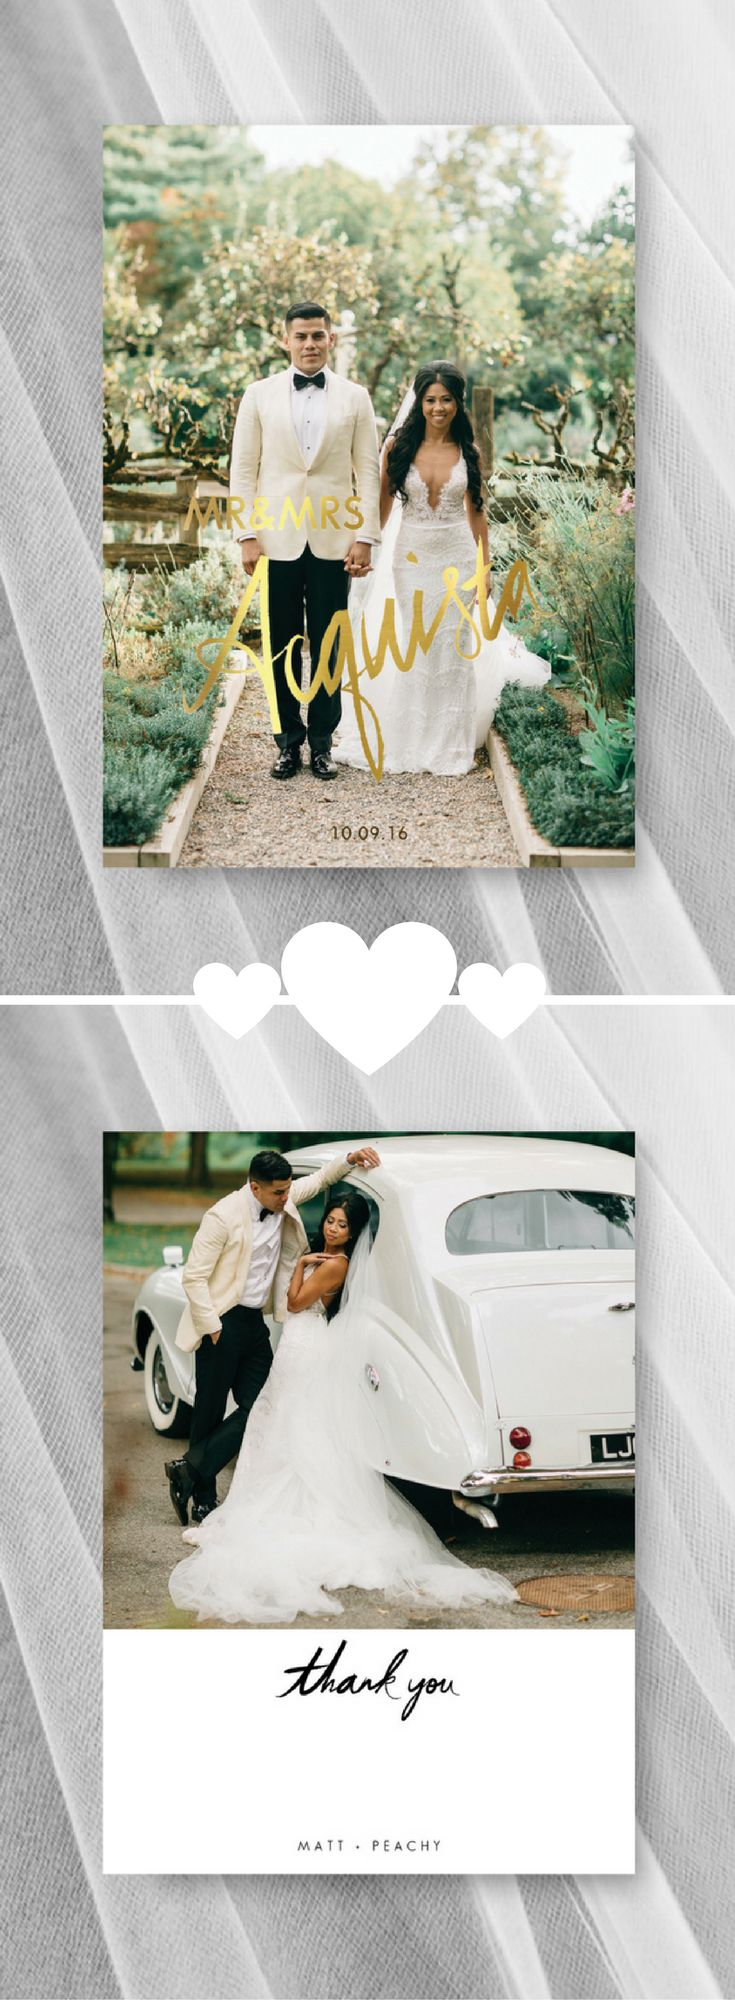 free online printable wedding thank you cards%0A Wedding Announcement Template Faux Gold Foil Photo Wedding Thank You Card